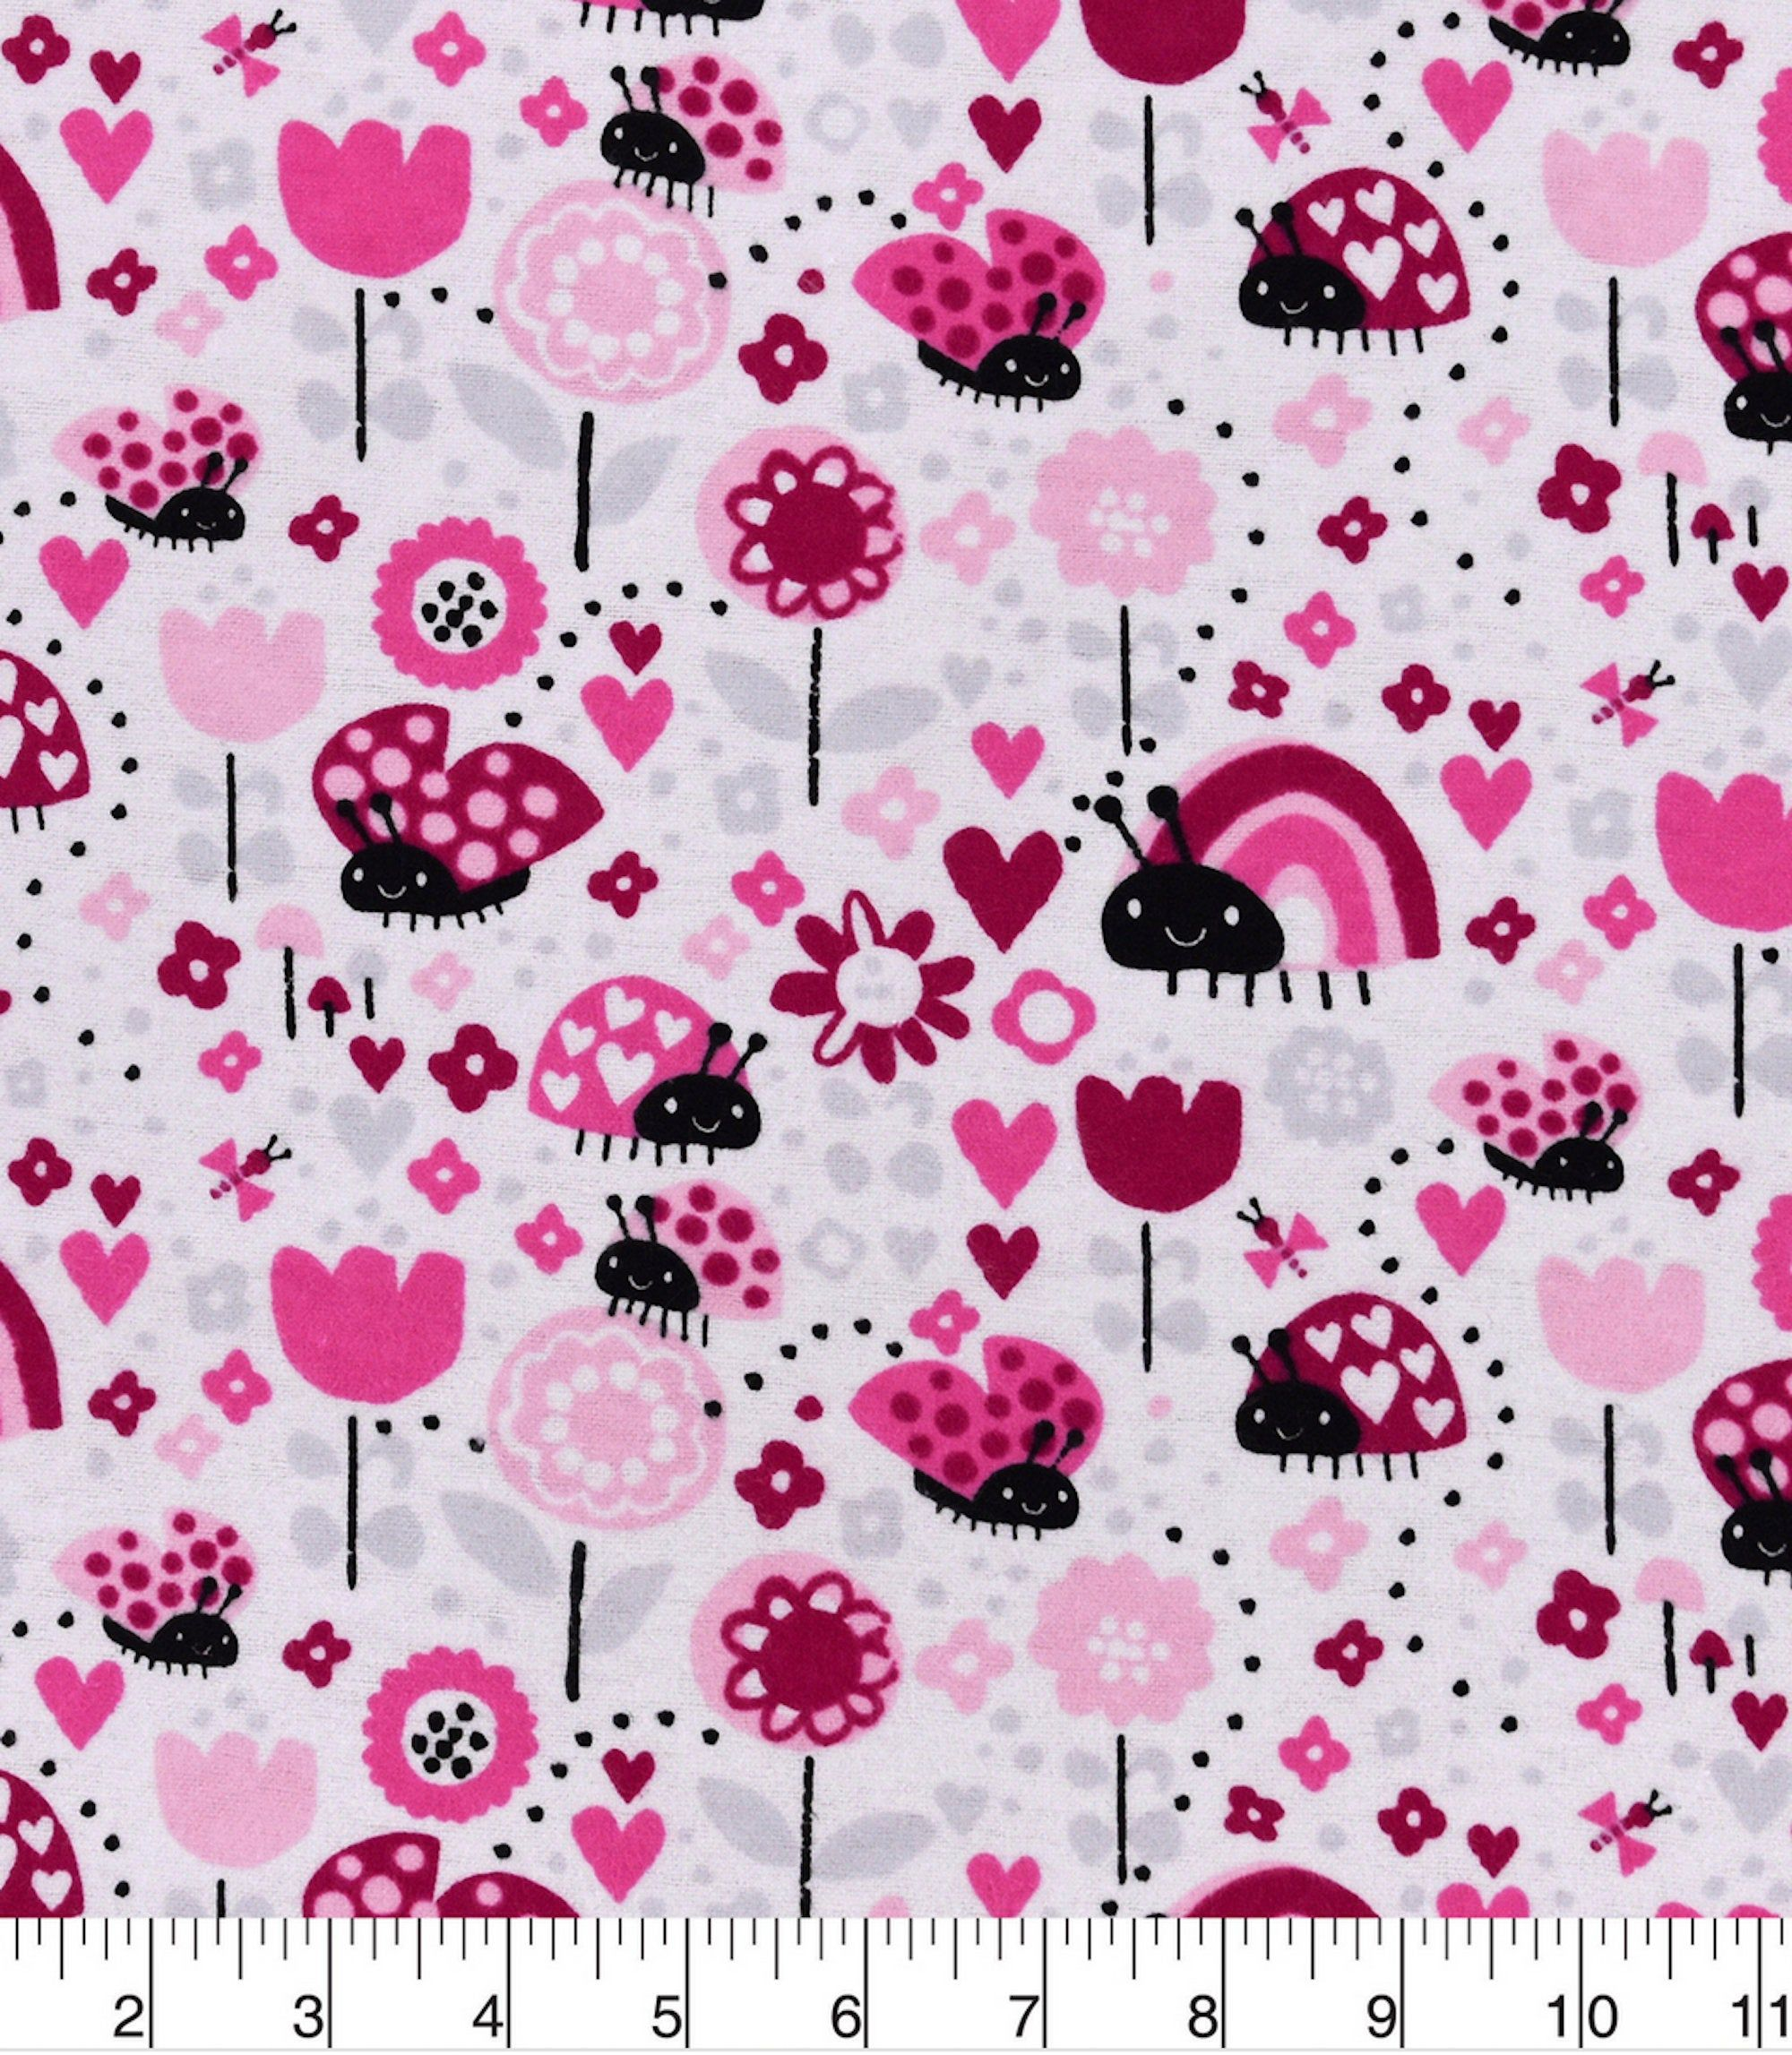 Ladybugs And Hearts Fabric By The Yard 100 Cotton Flannel Fabric Only Cotton Flannel Fabric Custom Items